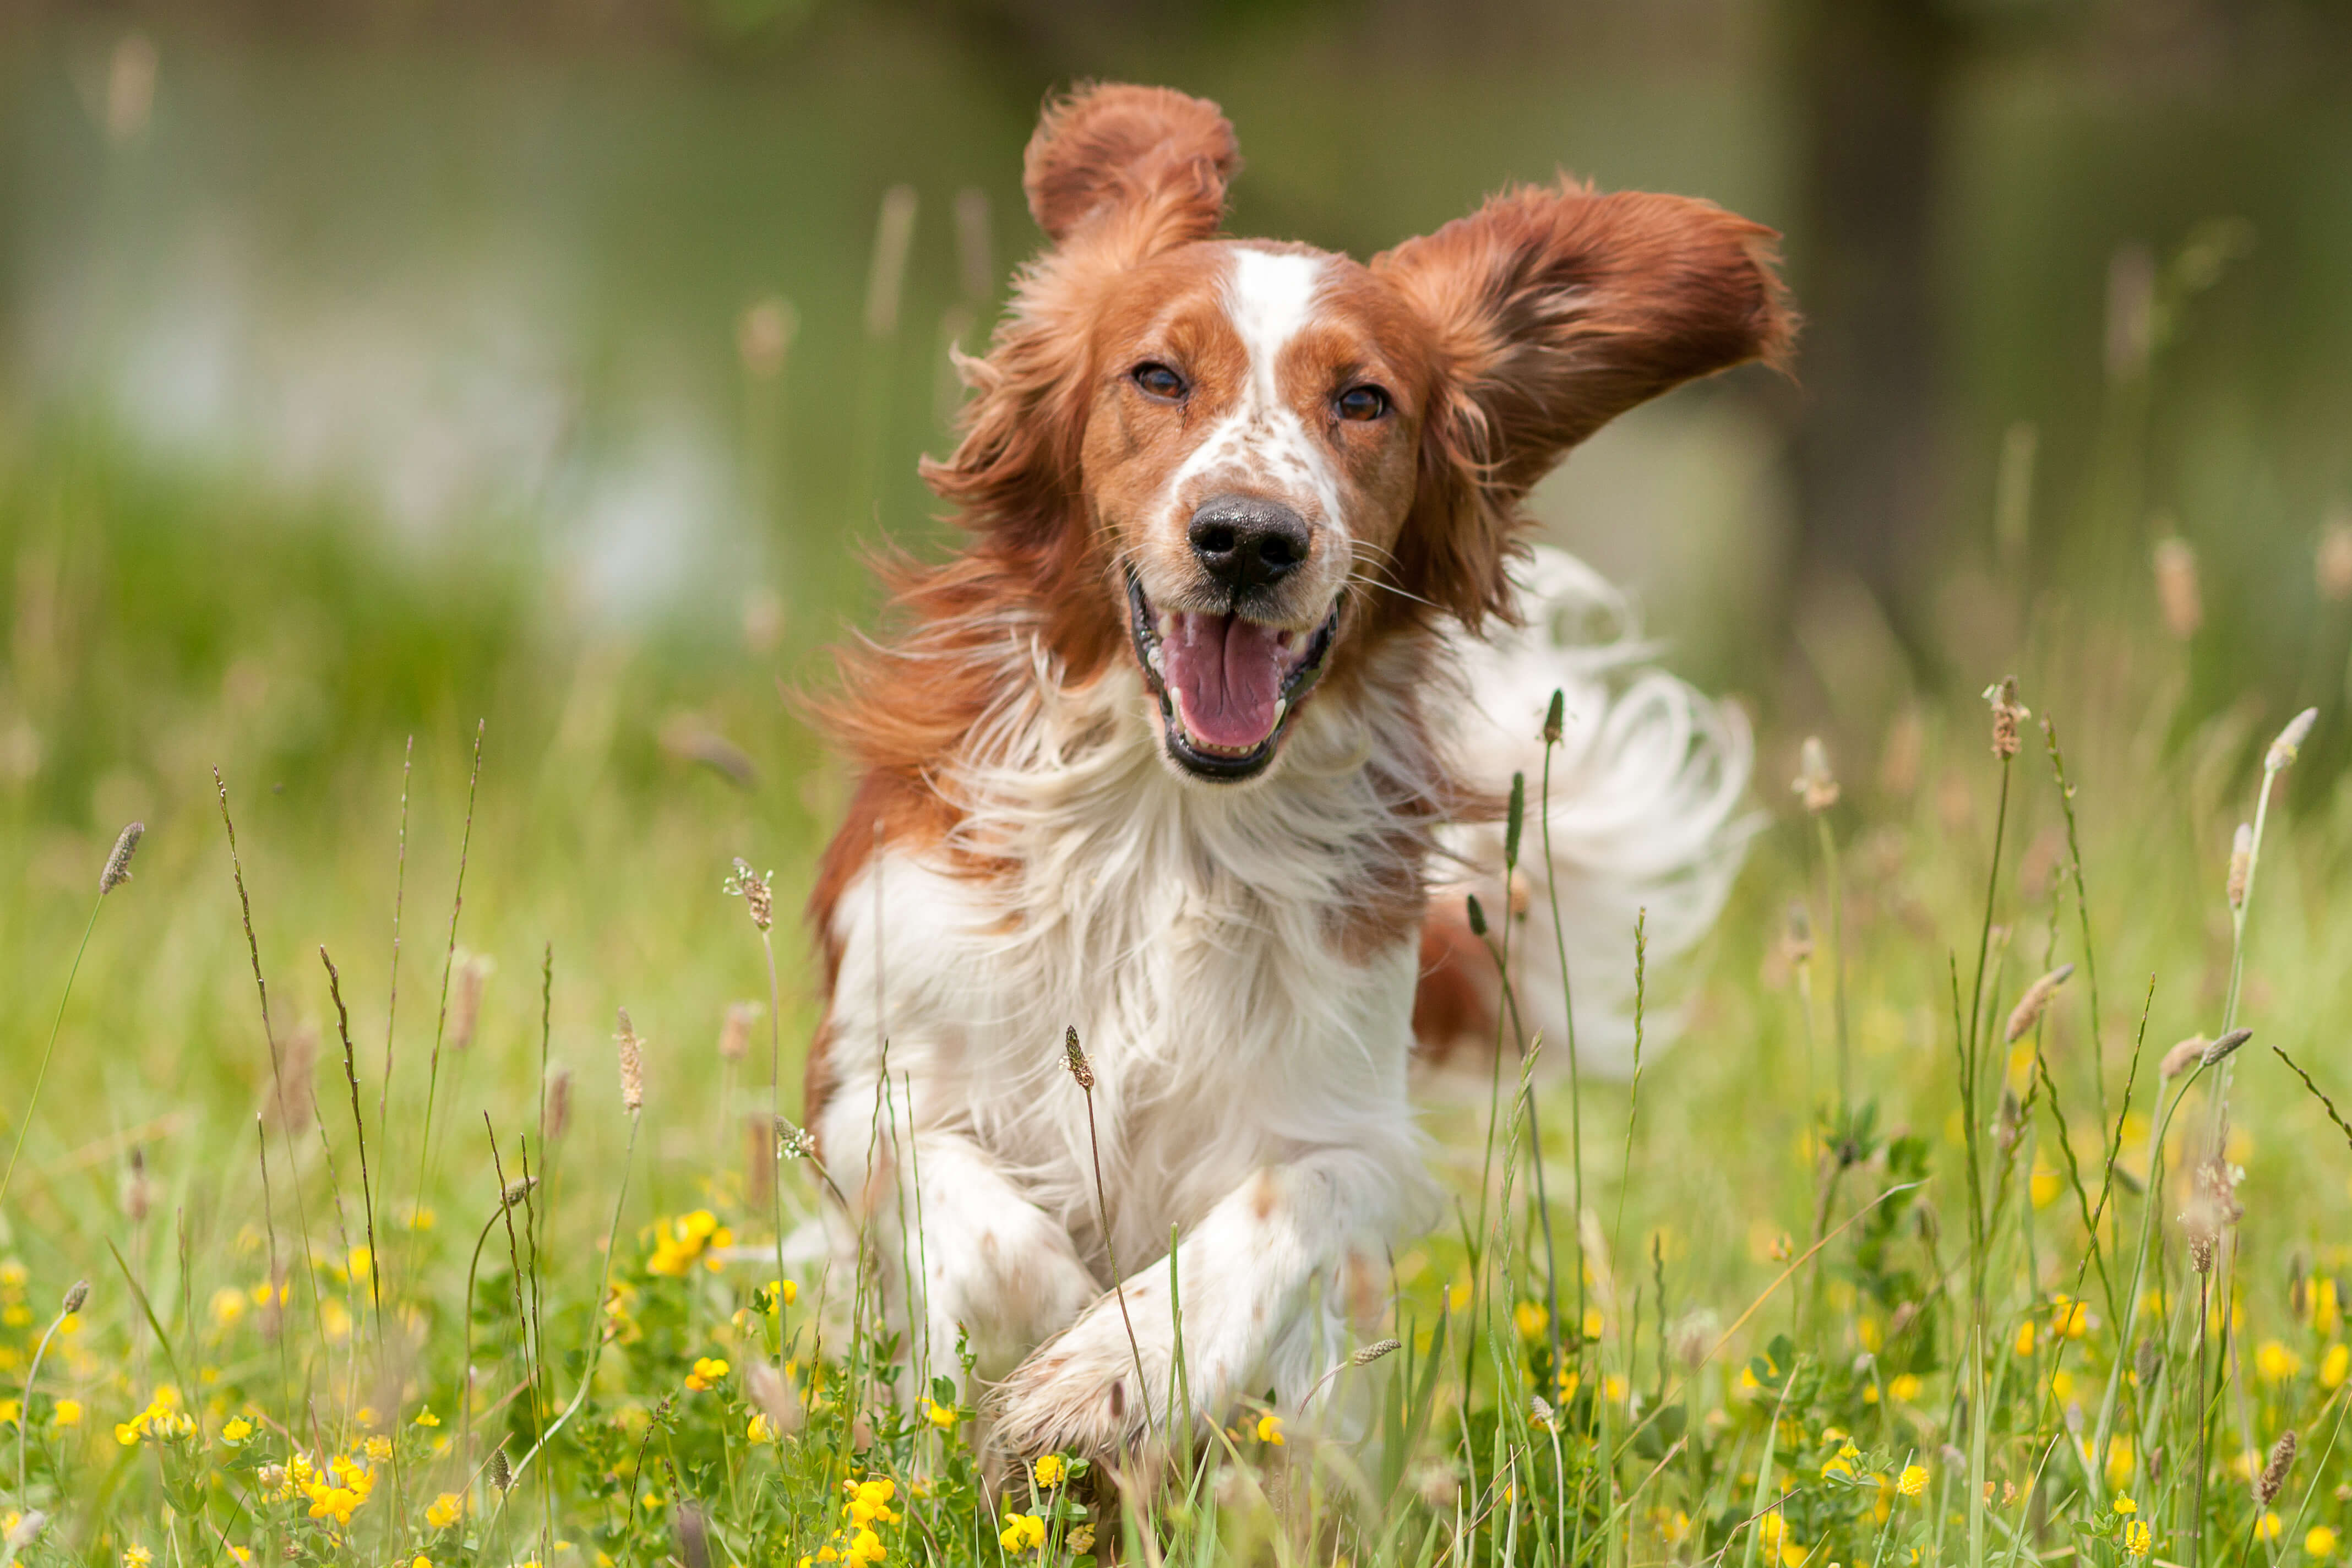 How to calm down a dog: a brown and white long-haired dog running through a field.